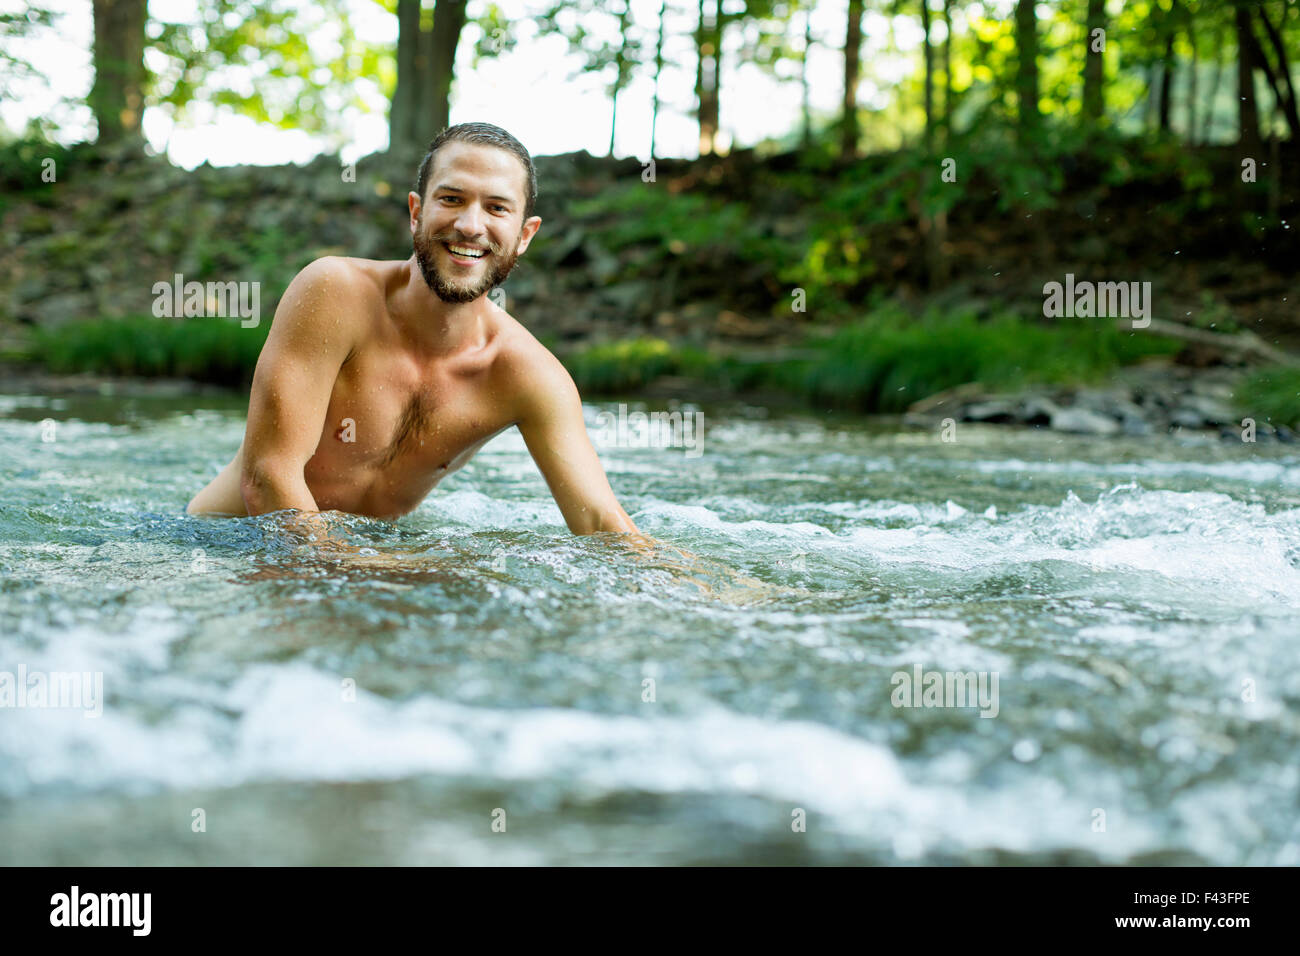 A young man swimming in a fast flowing cooling stream. - Stock Image